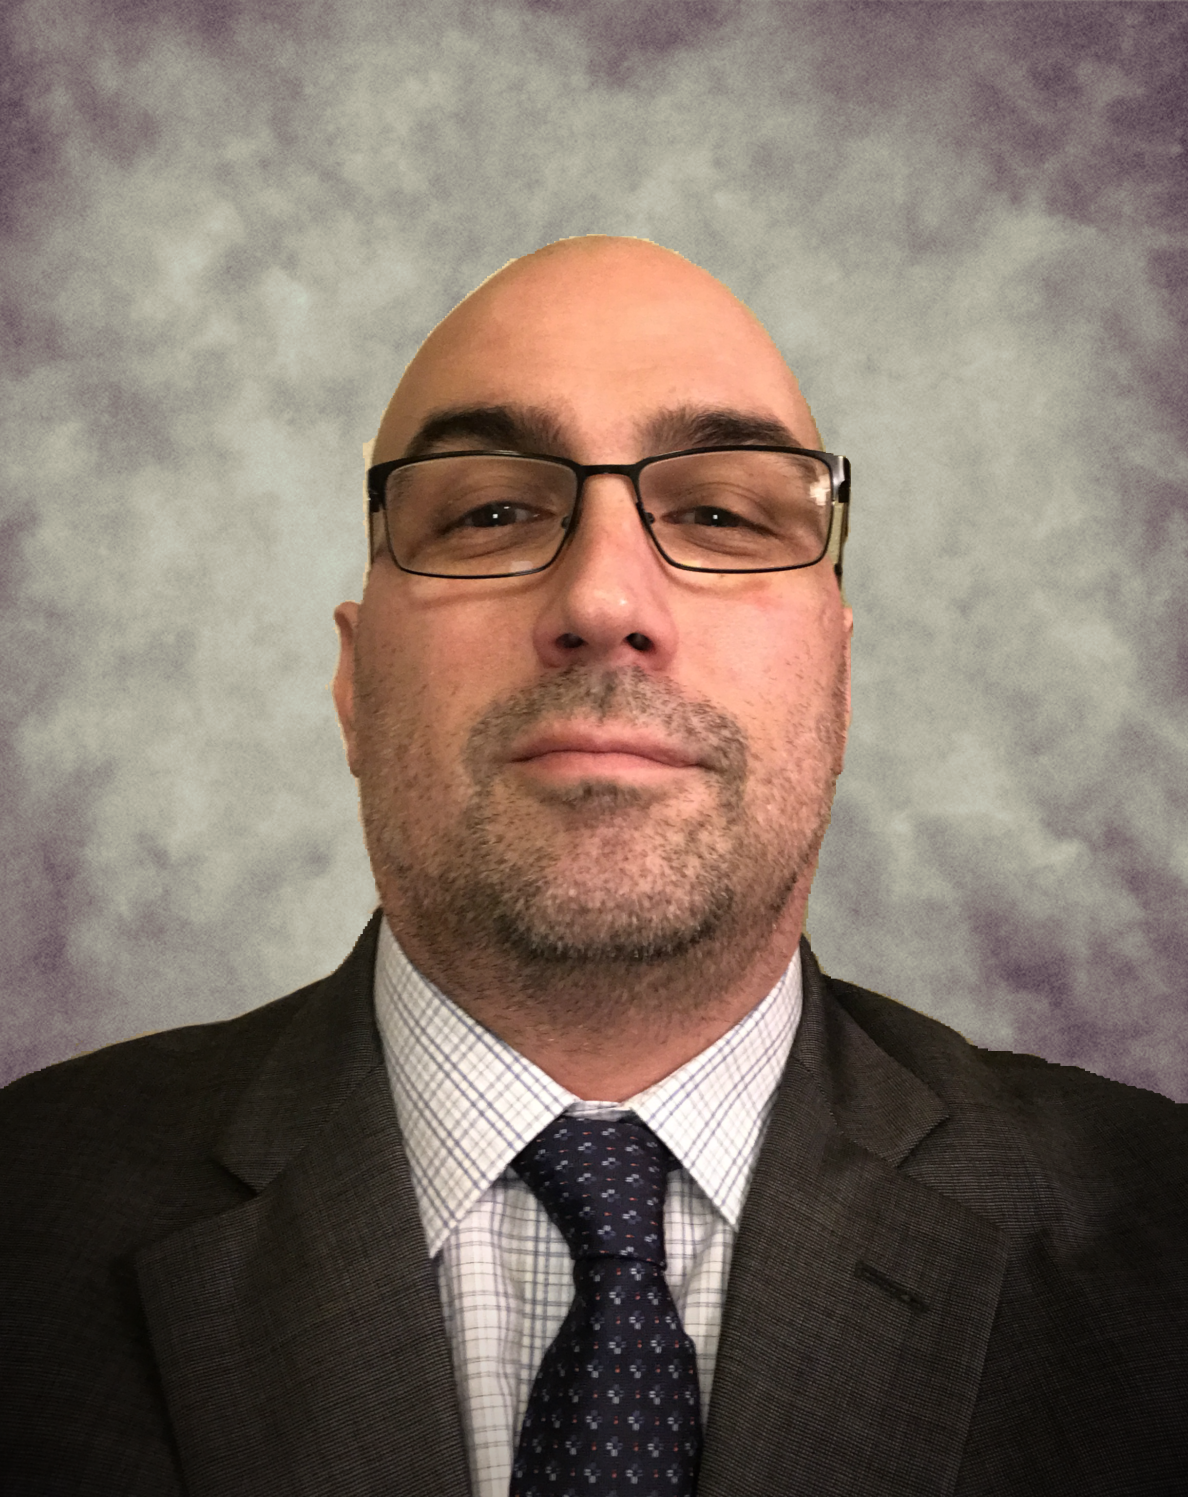 - Chris M. Sapia co-founded Rig Hands Solutions along with Mr. Wagers in March 2017.  From 1995 to 2013, Mr. Sapia worked for the University of Texas Medical Branch in various leadership roles including Associate Director of Finance upon his departure.  Mr. Sapia joined League Medical Concepts, LLC as Vice President of Operations in 2013.  In 2015, Mr. Sapia was instrumental in the sale of League Medical Concepts, LLC to Correct Care Solutions, LLC.  From 2015 through 2016, Mr. Sapia continued on with Correct Care Solutions, LLC to oversee the transition of League Medical Concepts, LLC into Correct Care Solutions, LLC and to lead the transition of several new facilities/contracts.Mr. Sapia earned a Bachelor of Business Administration in Finance from Tulane University in 1993 and earned a Masters of Business Administration in Finance from the University of New Orleans in 1995. Mr. Sapia has over 21 years in correctional healthcare leadership, including 17 in finance and accounting and four in executive leadership roles.  He has significant corporate experience in contract acquisition and management, quality improvement, risk management, accreditation compliance with the Joint Commission, ACA, NCCHC and client standards, and recruiting for all levels of healthcare staff.Click here to connect with Chris on LinkedIn.